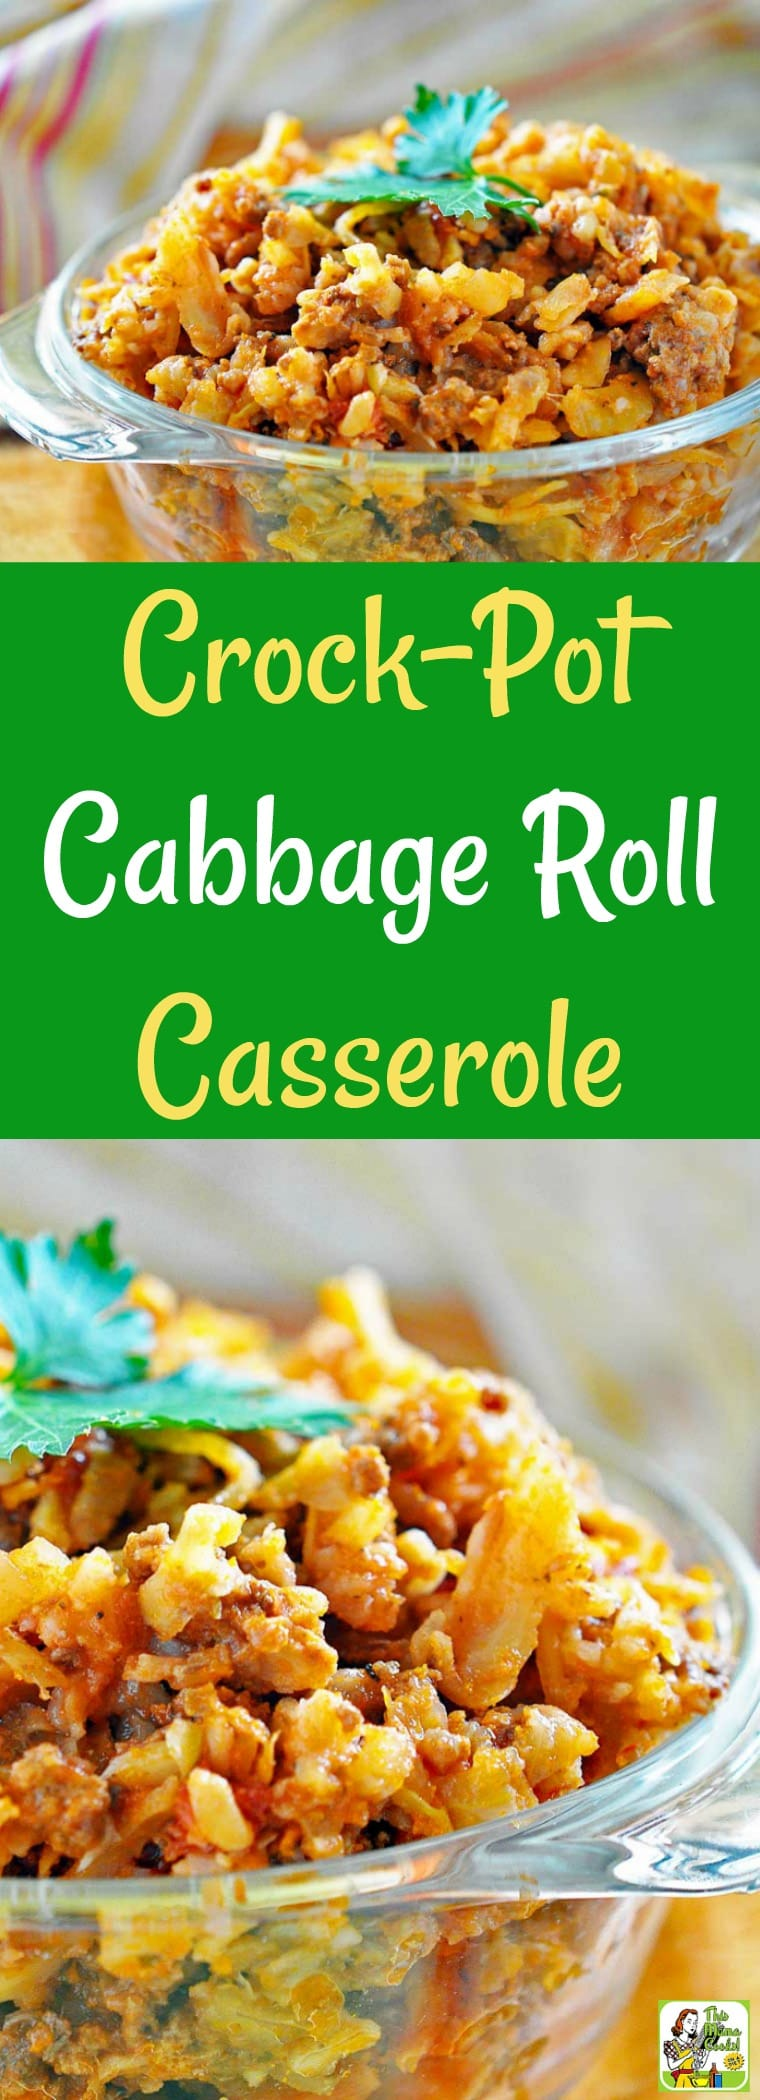 This Cabbage Roll Casserole is a fix it and forget it recipe that\'s made in your crock-pot. Crock Pot Stuffed Cabbage is easy to make because it uses convenient yet healthy items from the store like coleslaw mix and ground sirloin. #crockpot #slowcooker #stuffedcabbage #casserole #groundbeef #recipe #easy #recipeoftheday #healthyrecipes #easyrecipes #glutenfree